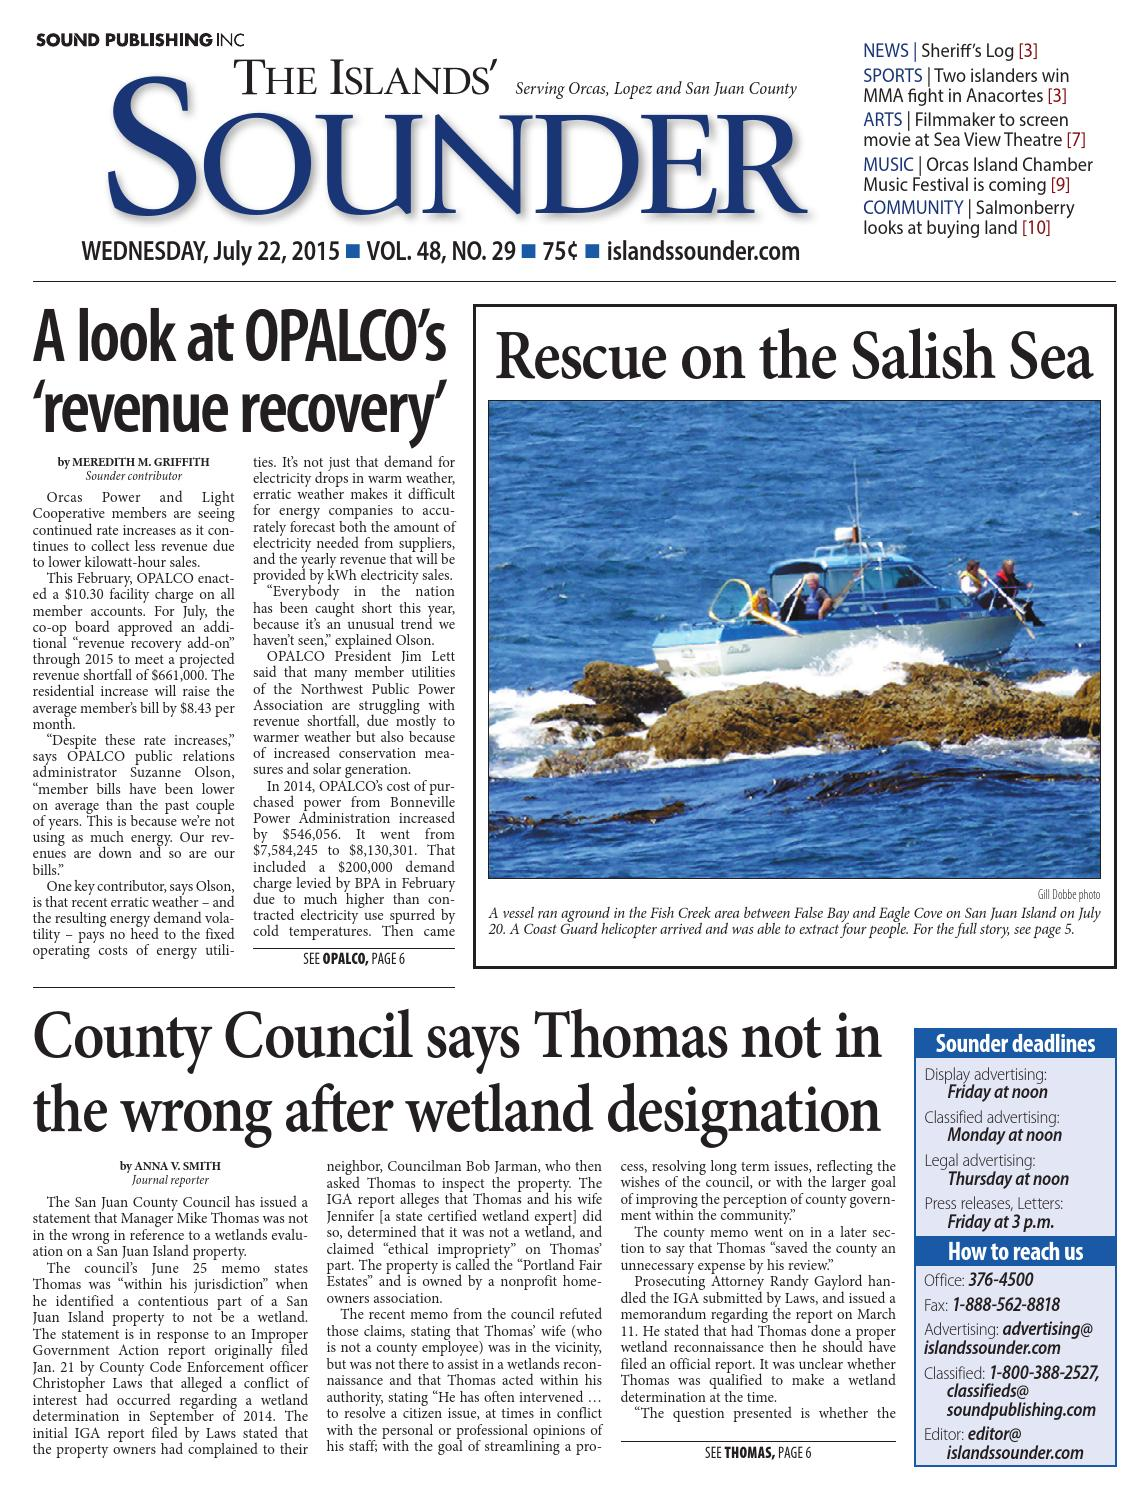 Islands\' Sounder, July 22, 2015 by Sound Publishing - issuu